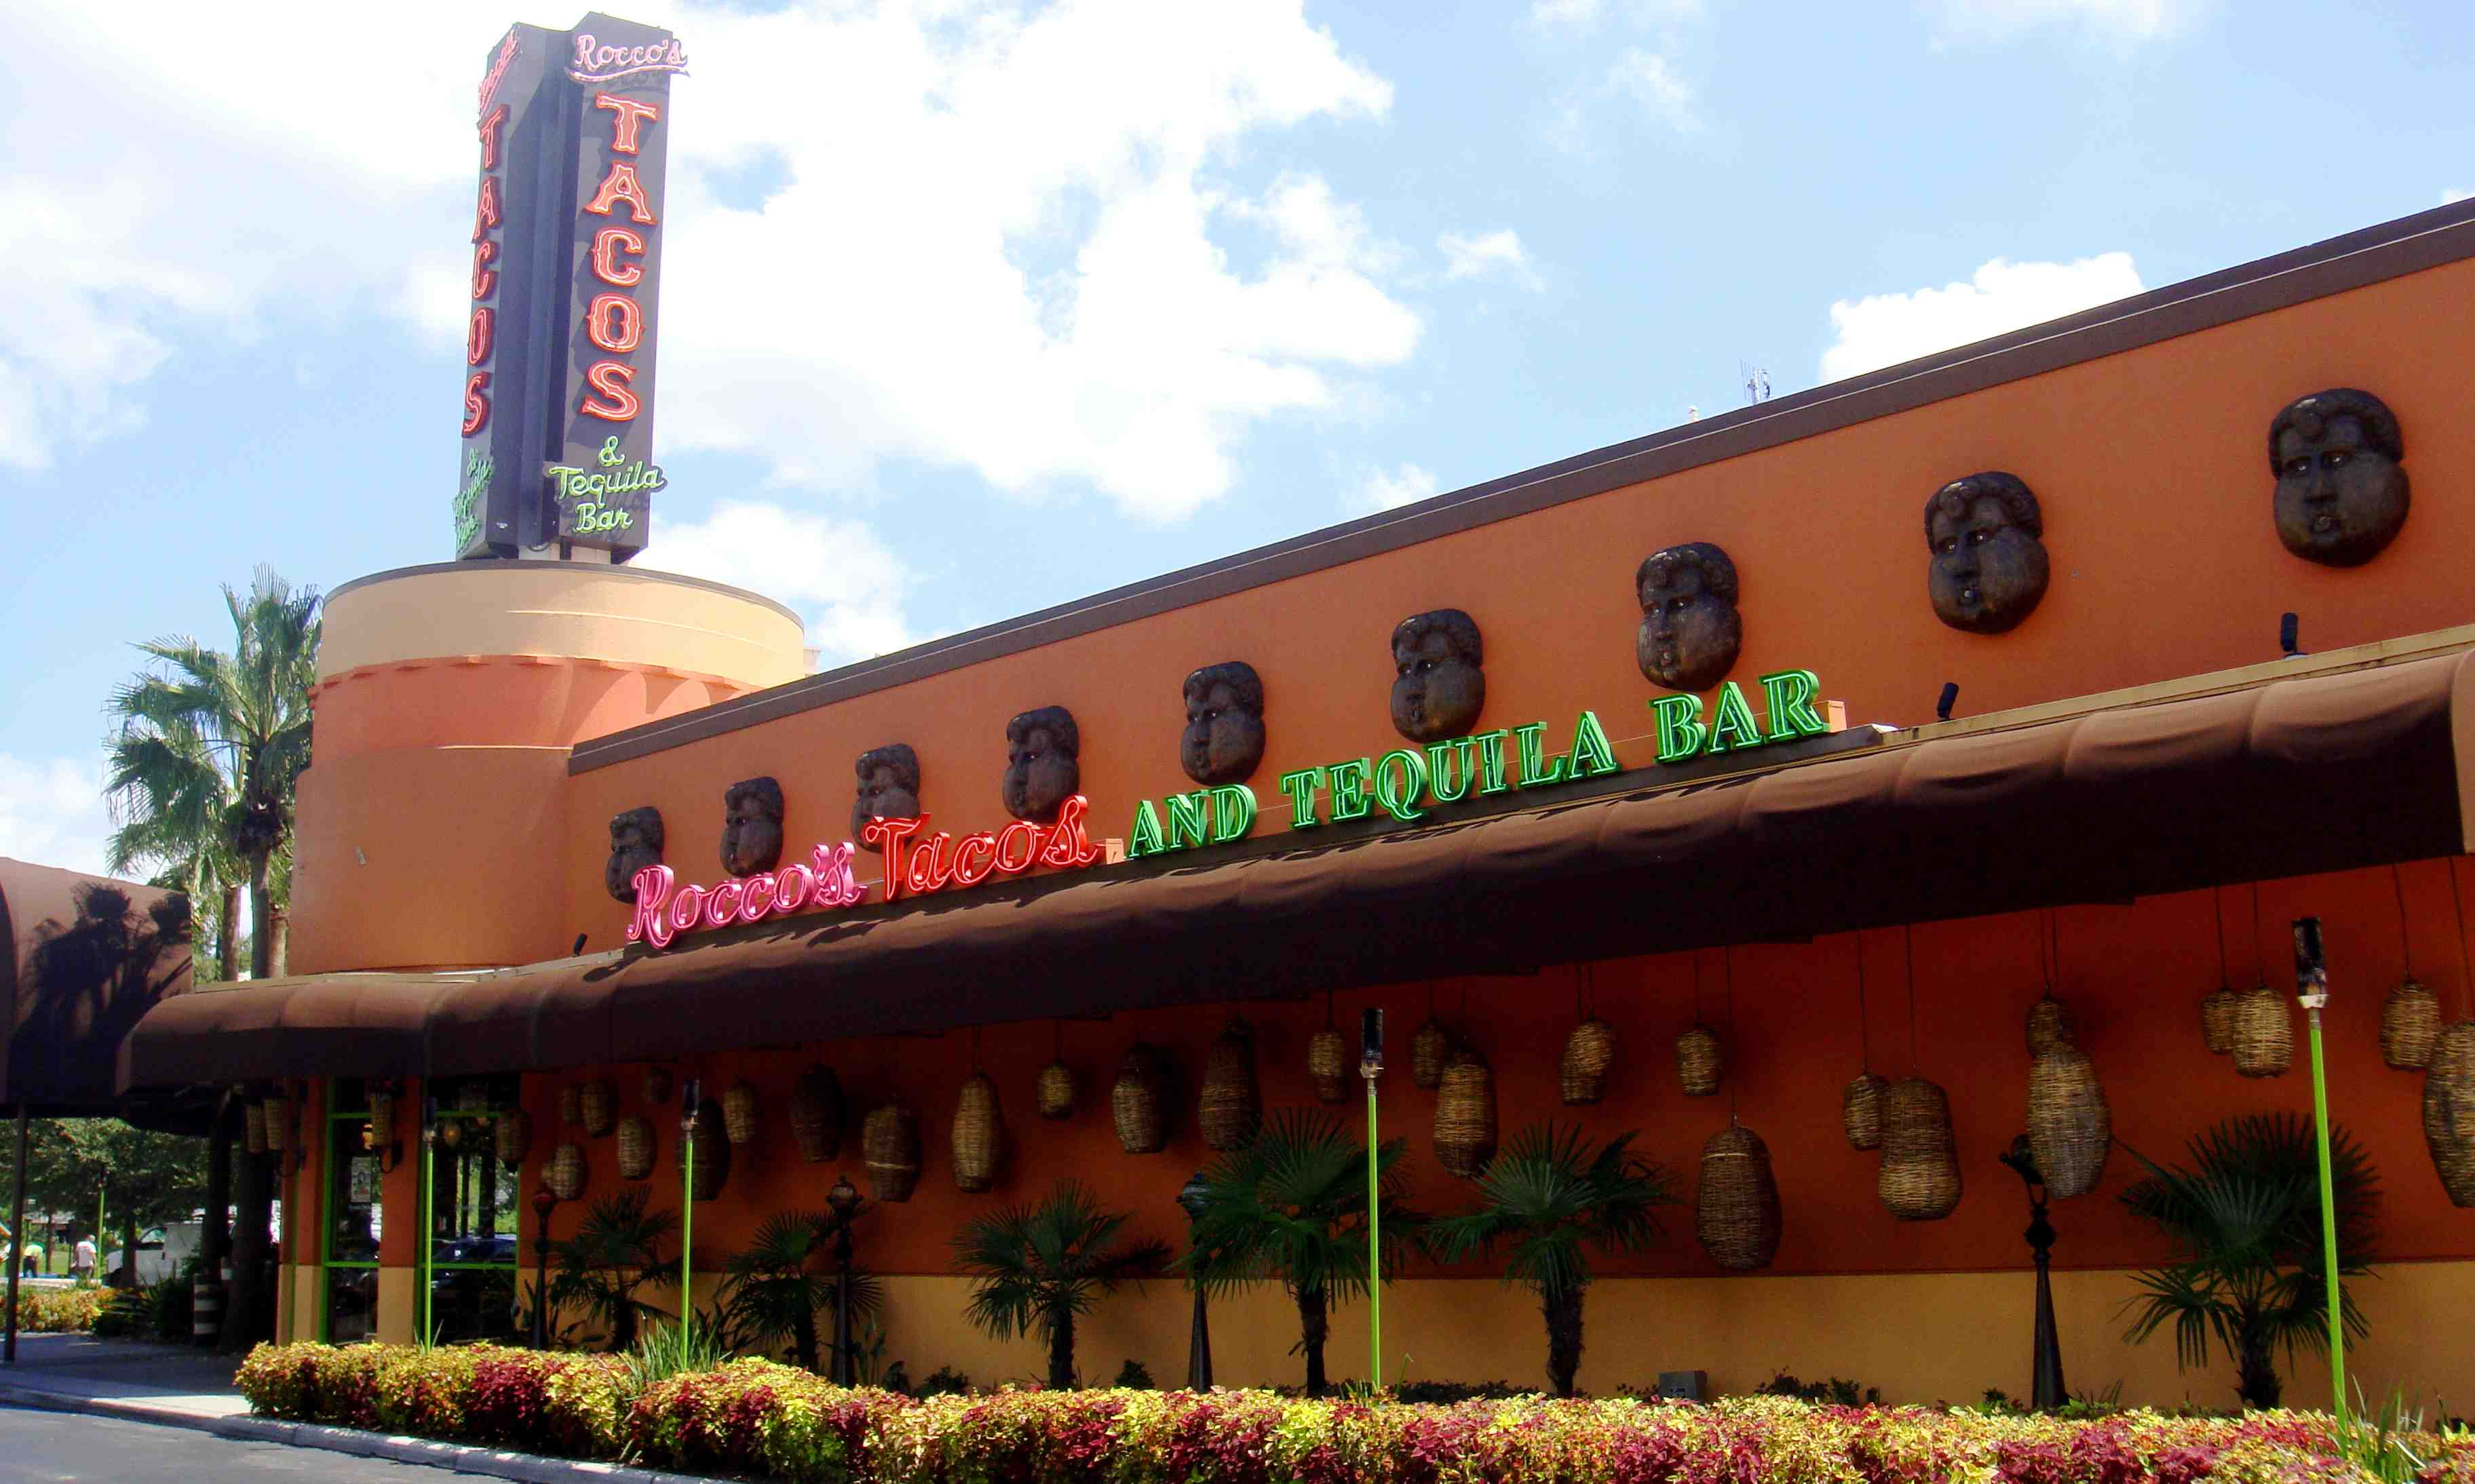 Rocco s Tacos & Tequila Bar